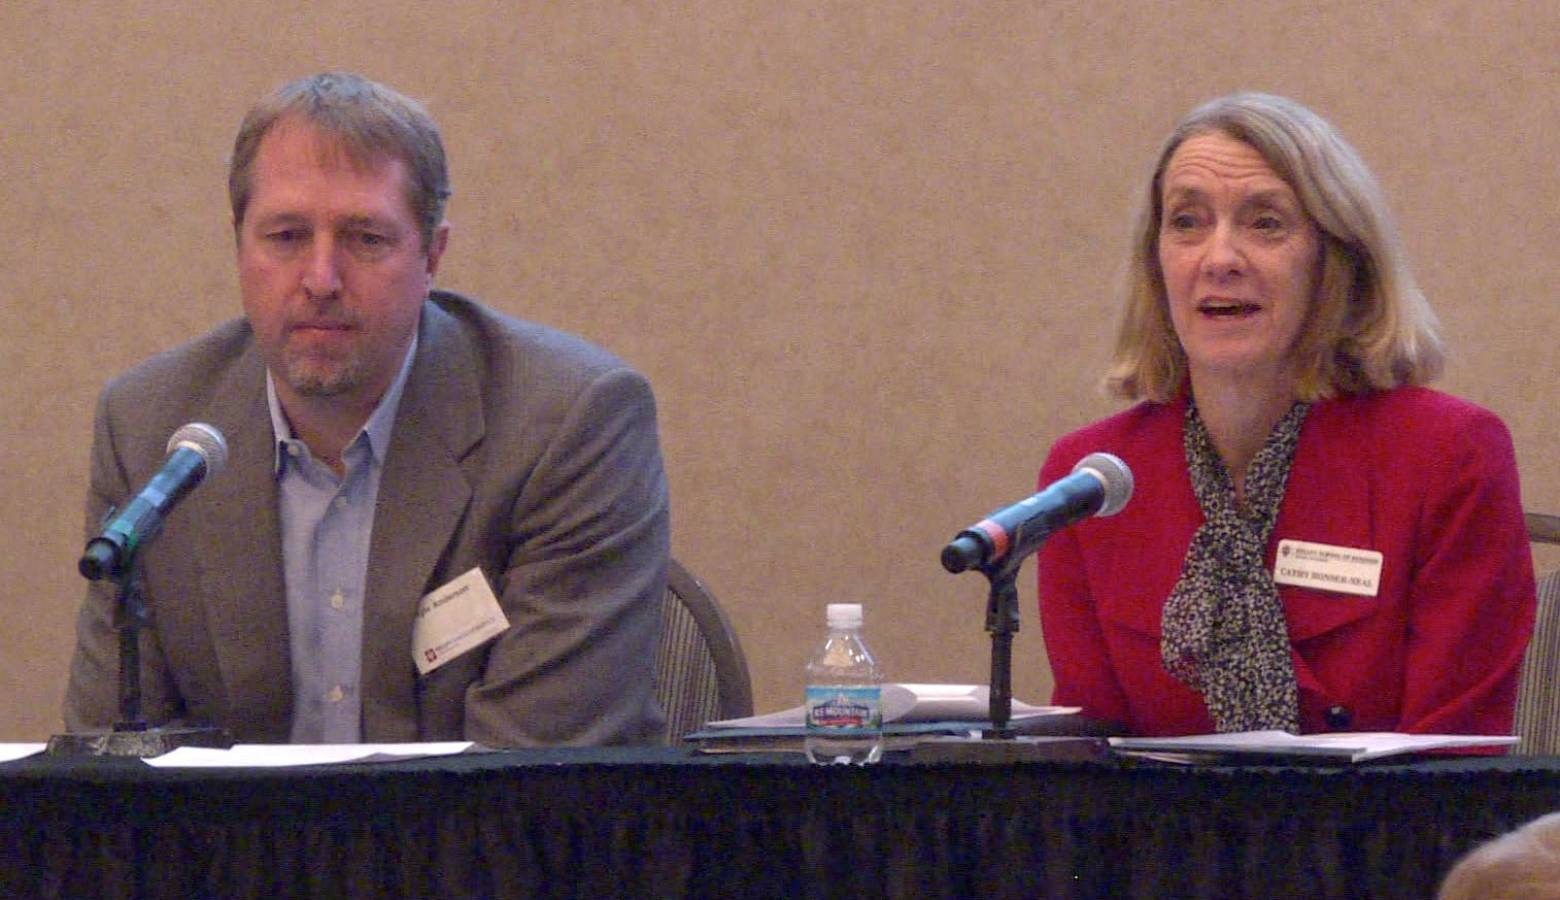 Kelley School of Business professors Kyle Anderson and Cathy Bonser-Neal speak on the 2020 economic forecast panel at IUPUI Thursday morning. (Samantha Horton/IPB News)